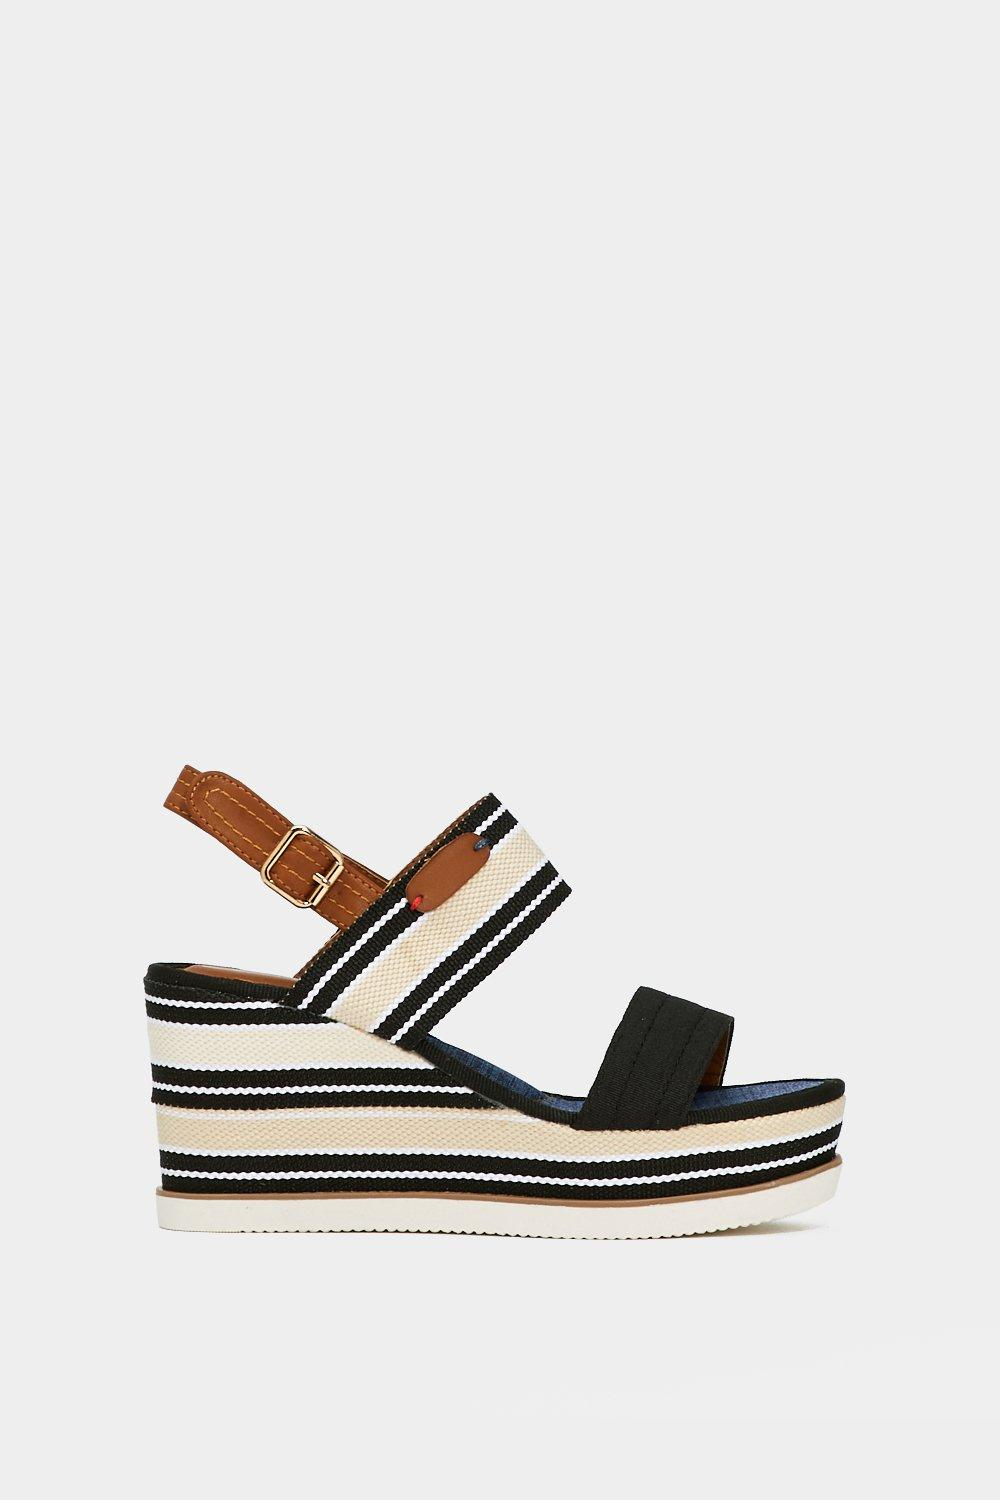 It's Me or Shoe Striped Wedge explore cheap online discount countdown package cheap best place FjVMblHE